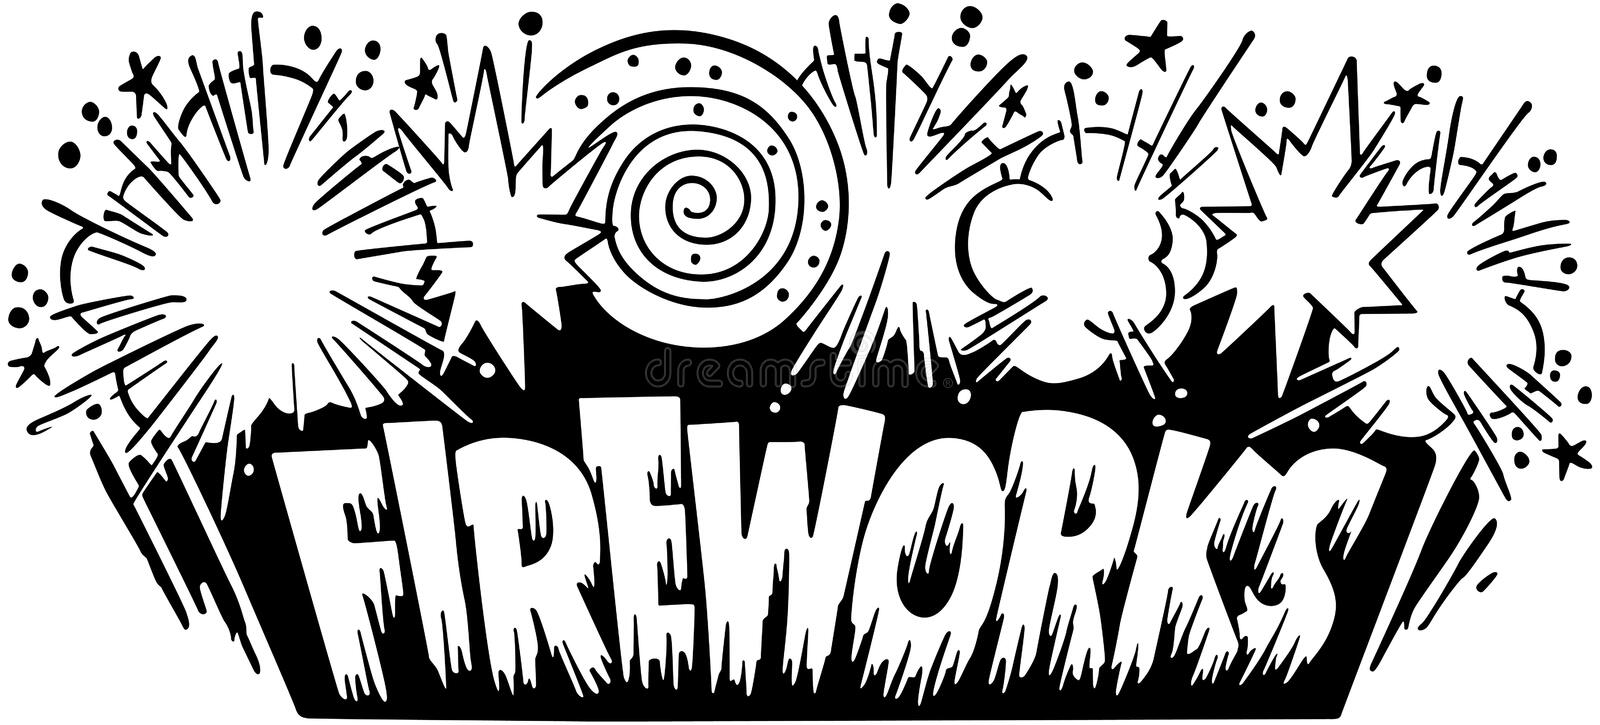 Fireworks Header vector illustration